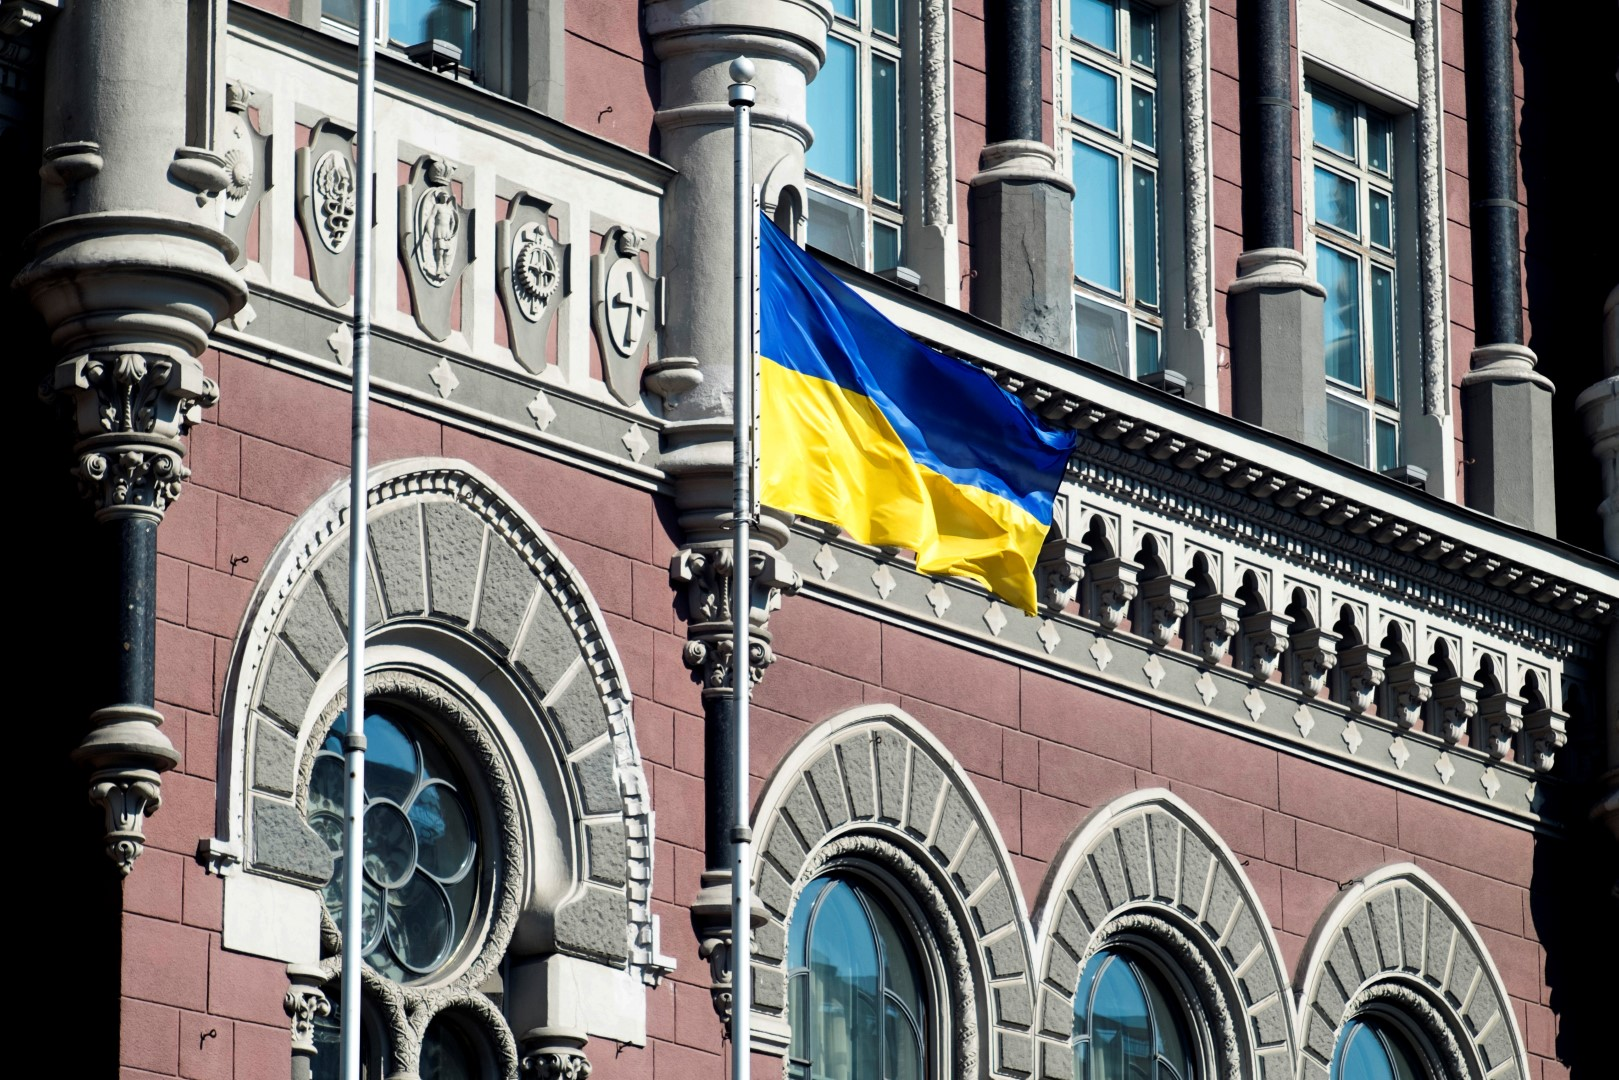 A Ukrainian national flag flies outside the Ukraine central bank in Kiev, Ukraine, on Friday, March 14, 2014. Ukraine's Eurobonds weakened and stocks headed for the worst week in seven on concern the conflict with Russia is intensifying two days before a referendum this weekend on the Crimean region's independence. Photographer: Vincent Mundy/Bloomberg